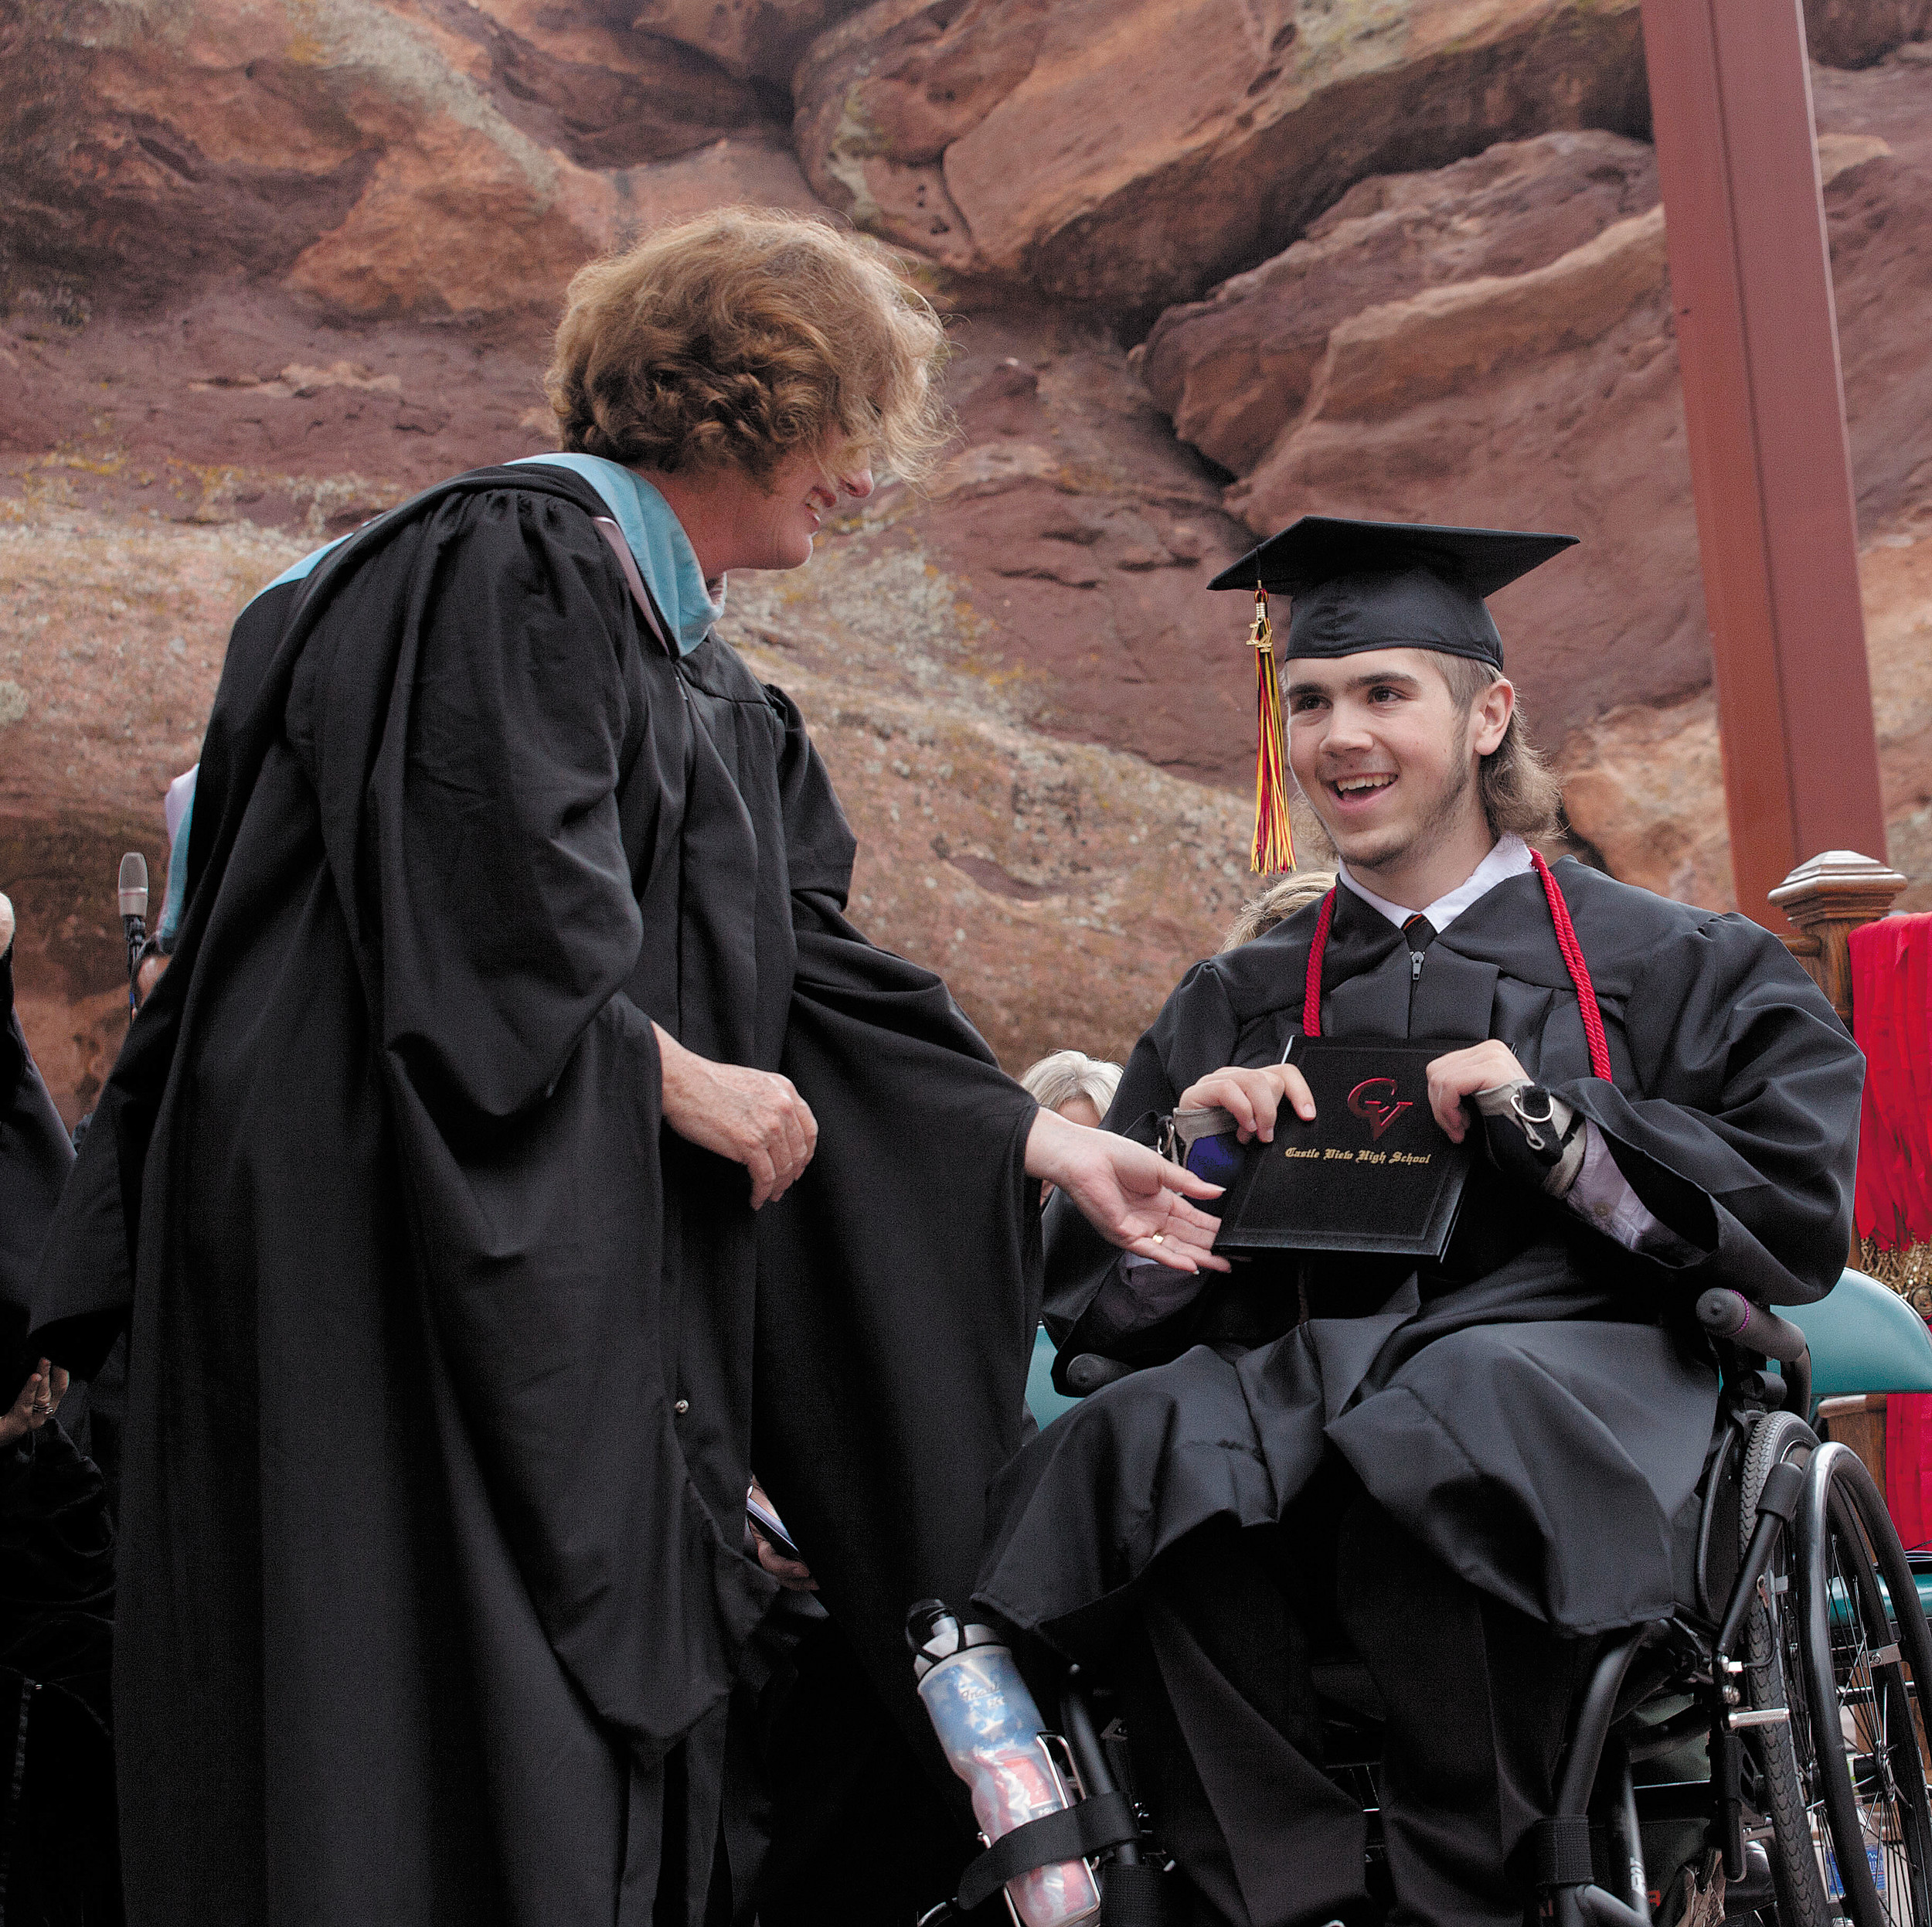 Joseph Hunsaker, the Castle View wrestler who broke his neck during a meet in February, takes his diploma with a smile from DougCo school board director Judith Reynolds during his commencement ceremony on May 21 at Red Rocks Amphitheater.